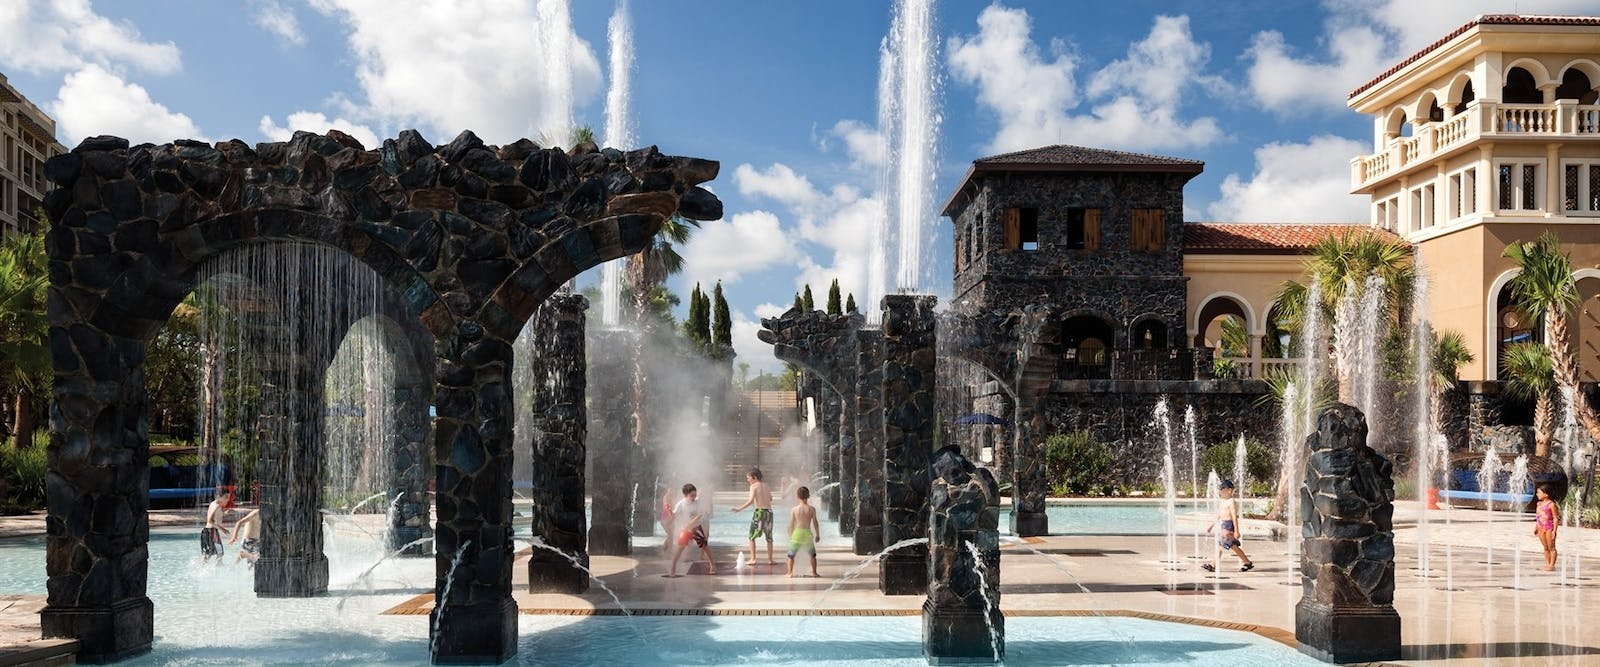 Splash Zone at Four Seasons Resort Orlando at Walt Disney World Resort, Florida